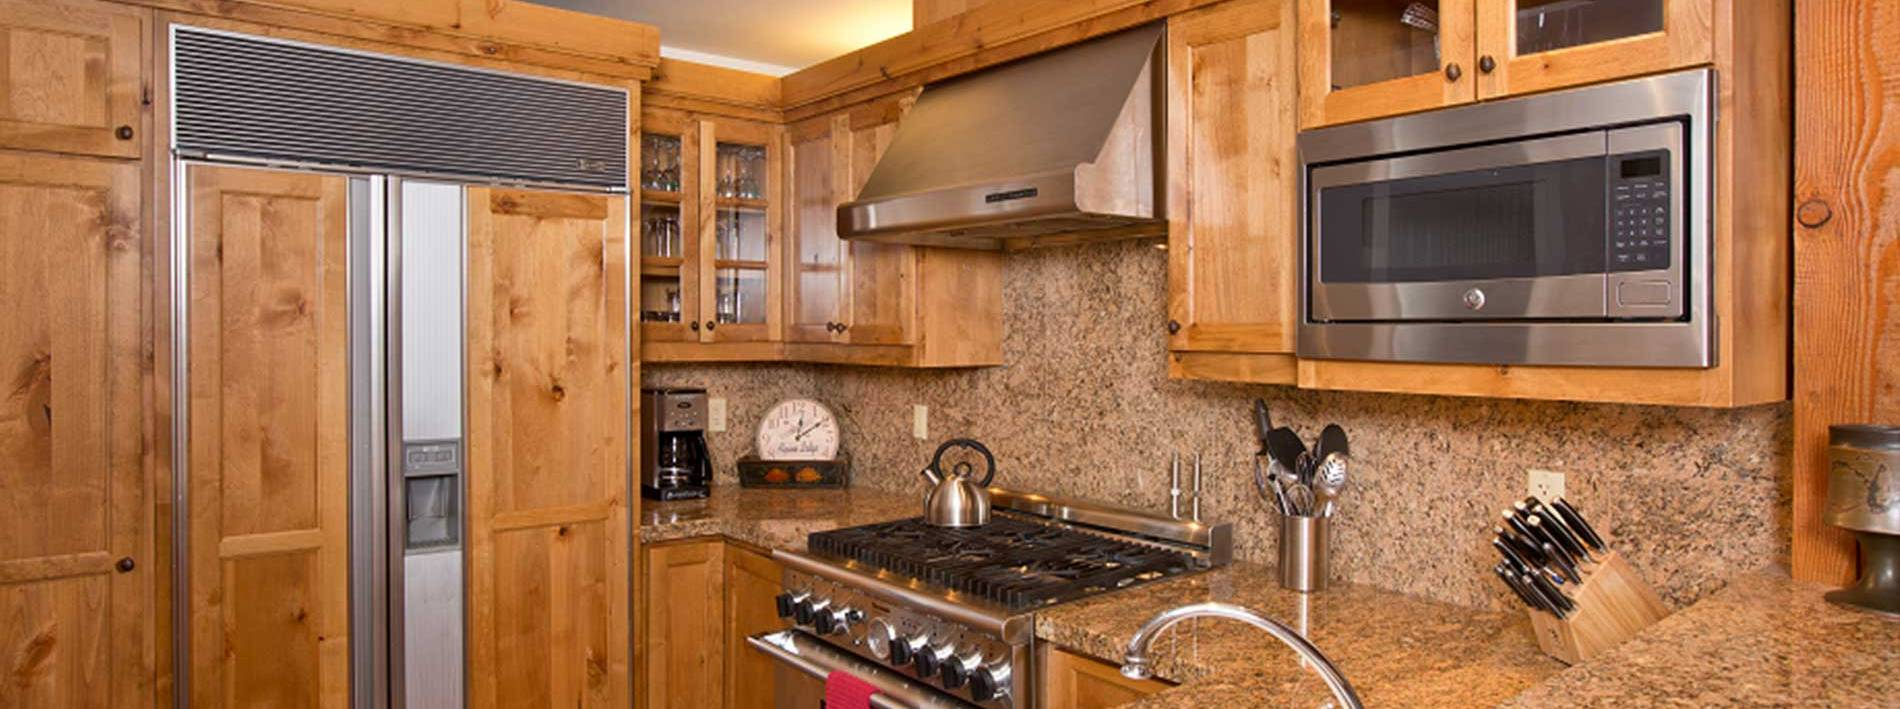 Pathfinder private home rental large kitchen